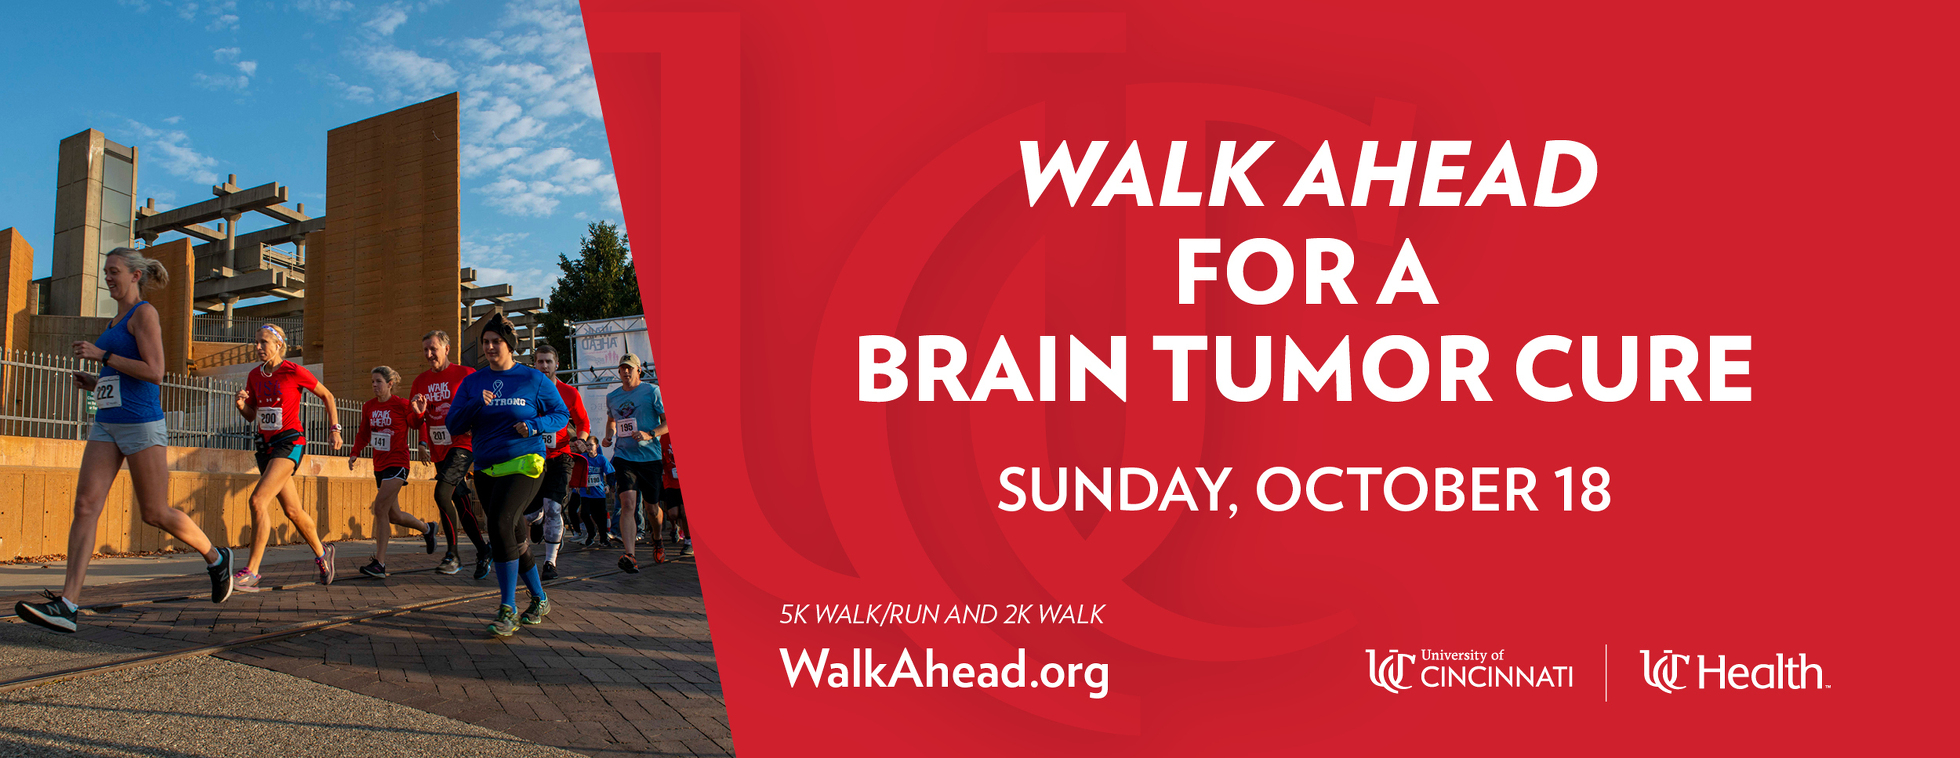 2020 Walk Ahead for a Brain Tumor Cure